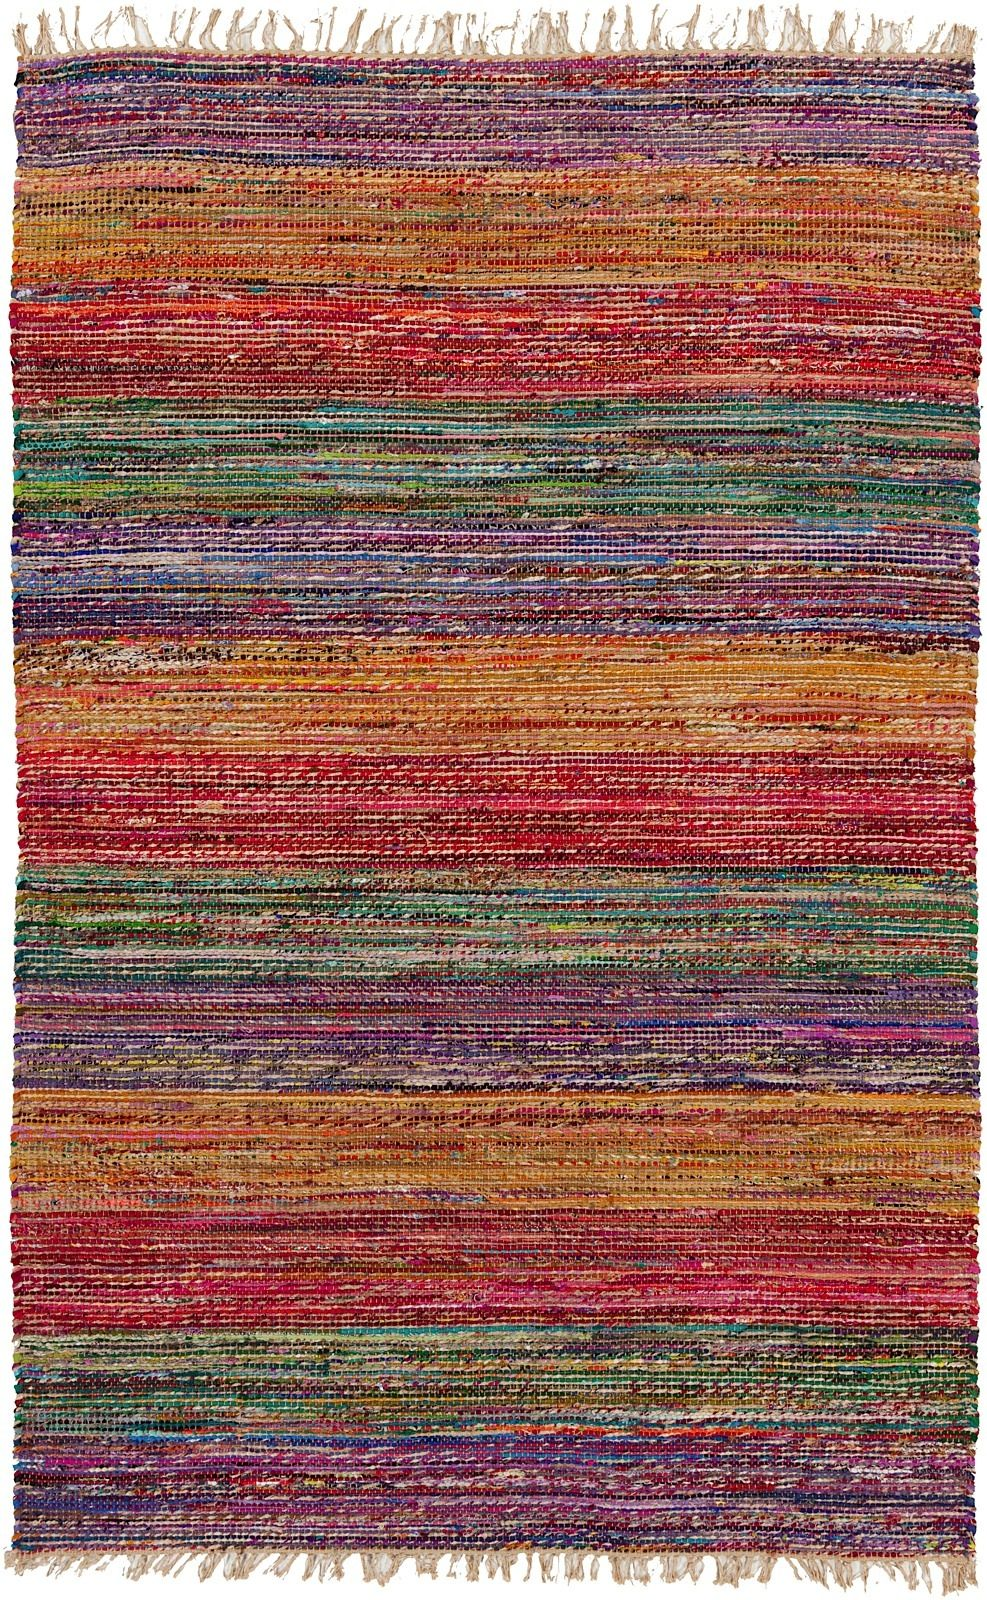 surya pride solid/striped area rug collection